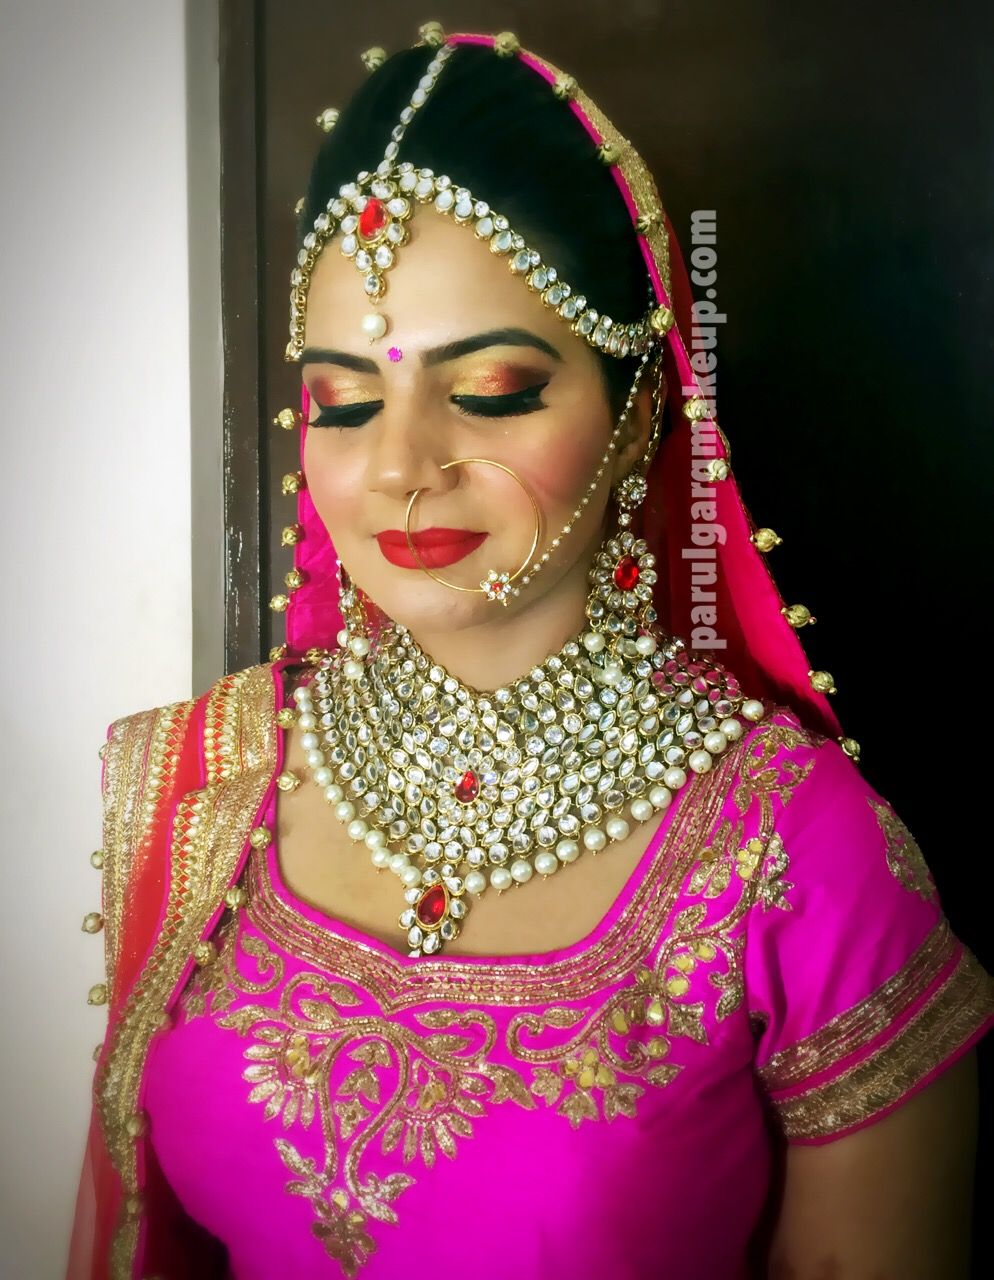 north indian bridal makeup by parul garg http://www.parulgargmakeup